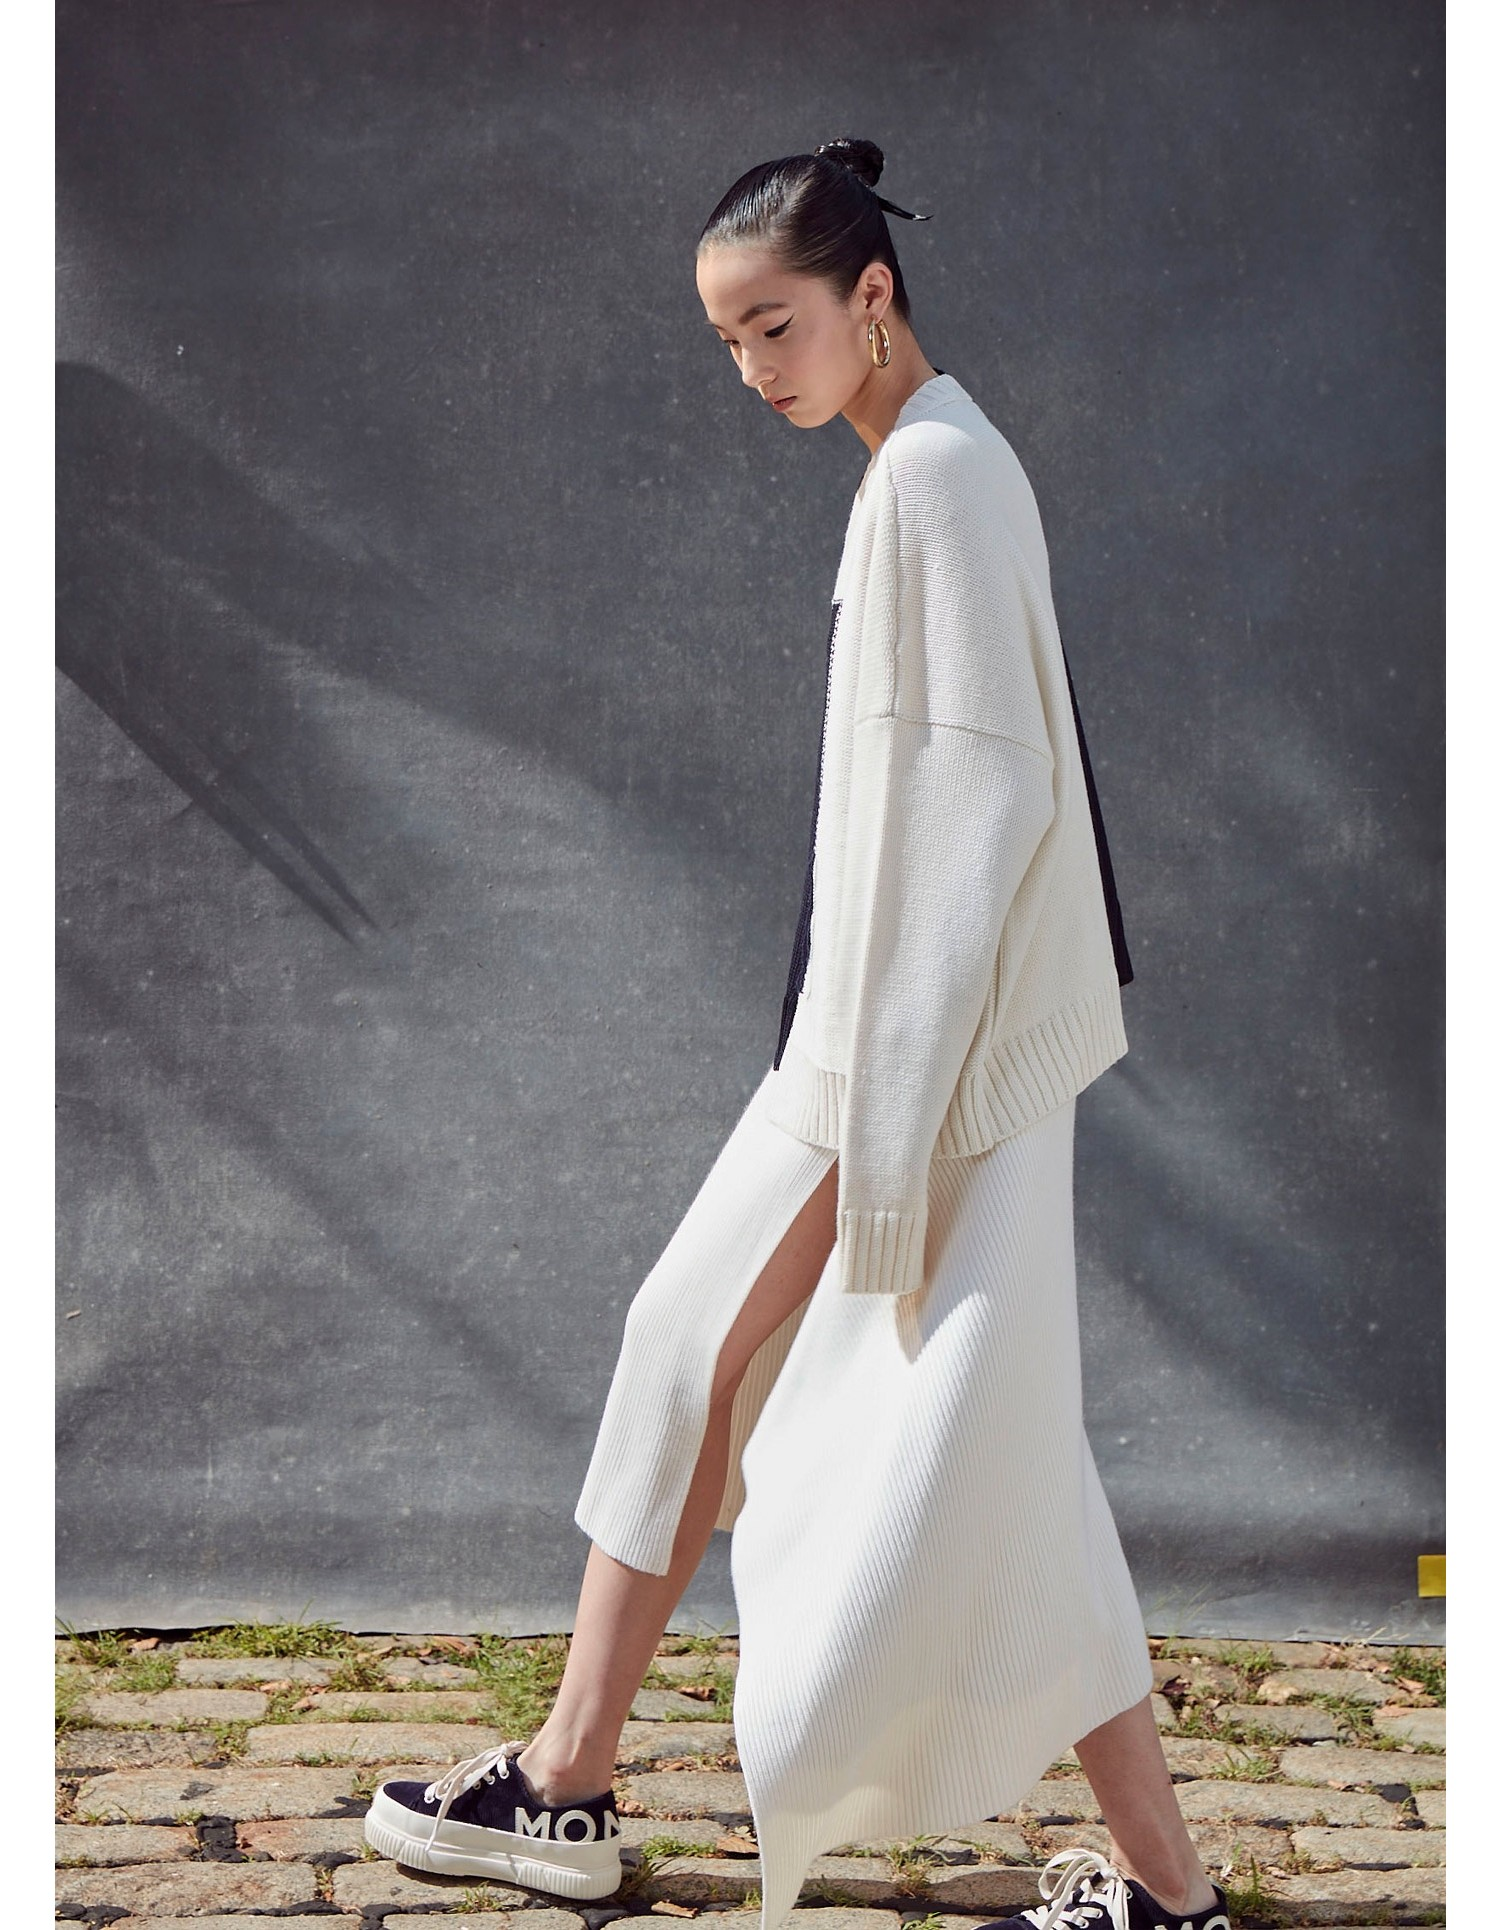 MONSE Sliced Ribbed Knit Skirt in Ivory on Model Side View